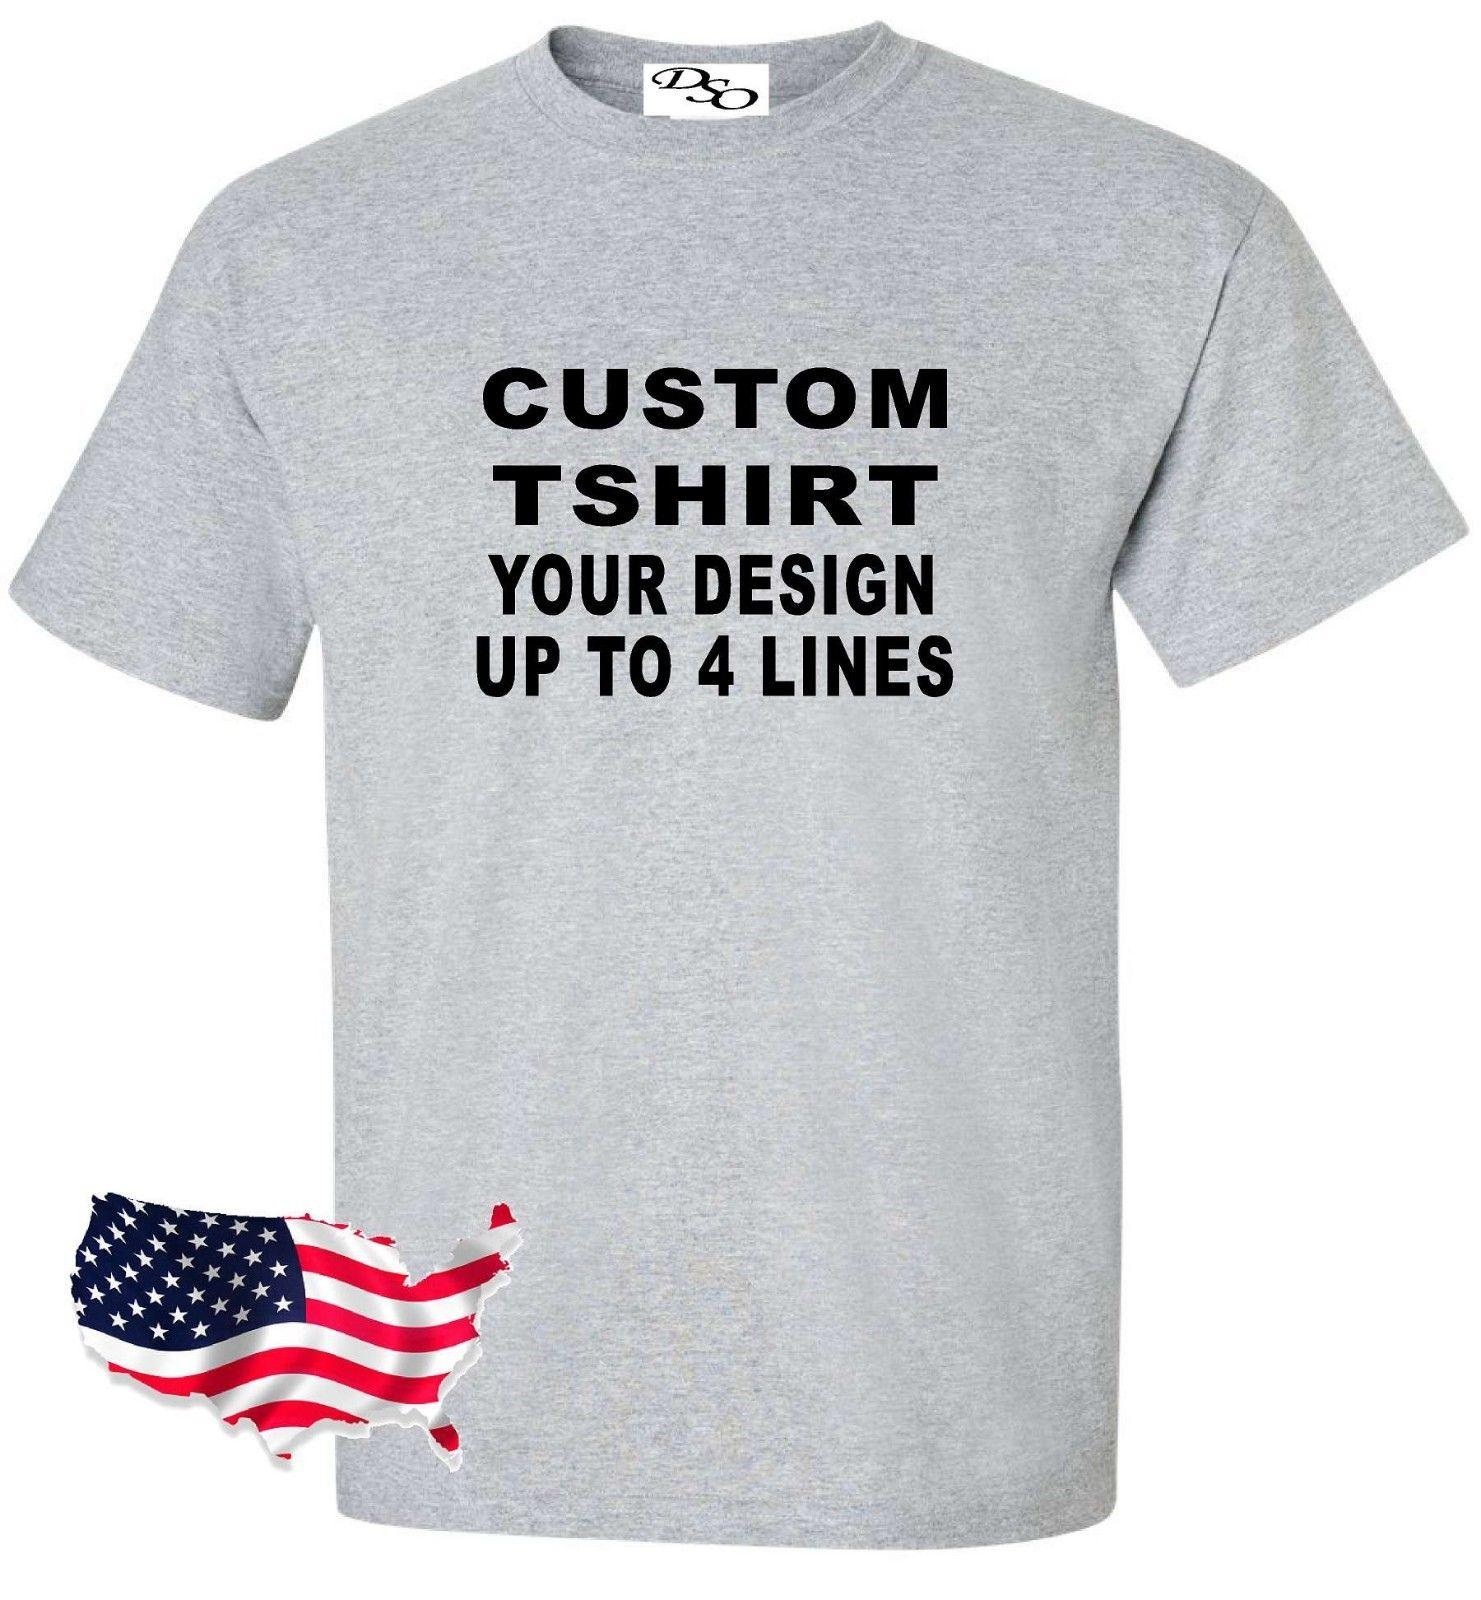 18af6287b7 Custom T Shirt Your Design Your Text Here 1300  16 Shirt Colors SM 6X  Classic Casual 2018 New Fashion Hipster O Neck Cool Tops Funny Printed T  Shirts Cool ...